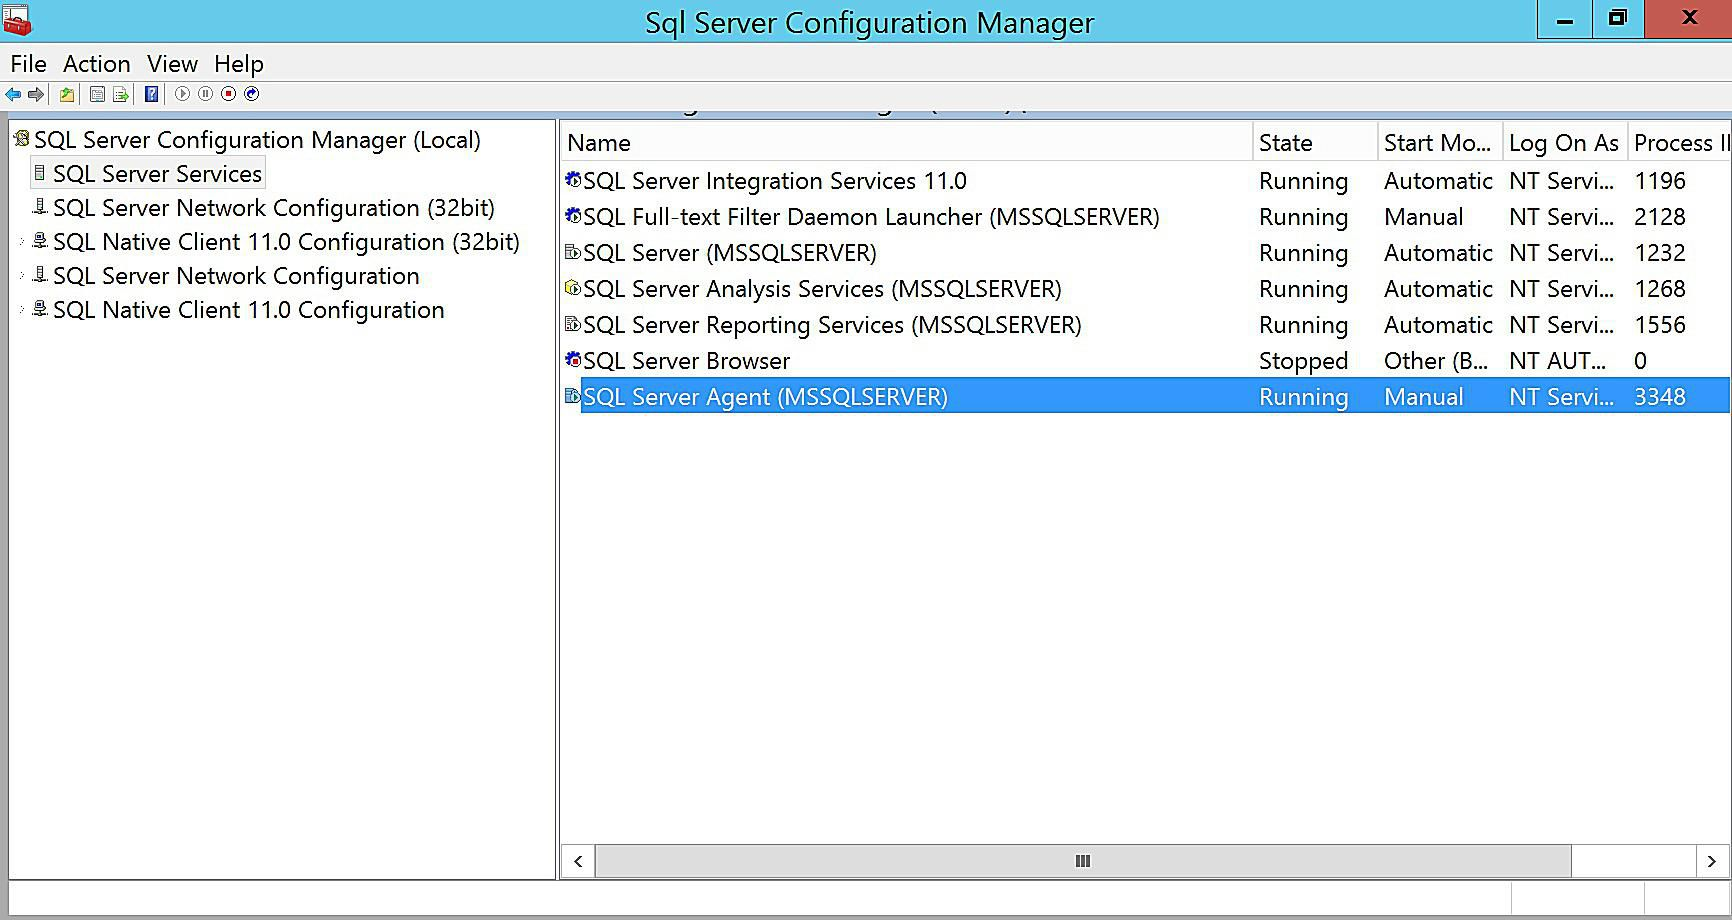 replace in sql server 2012 with example